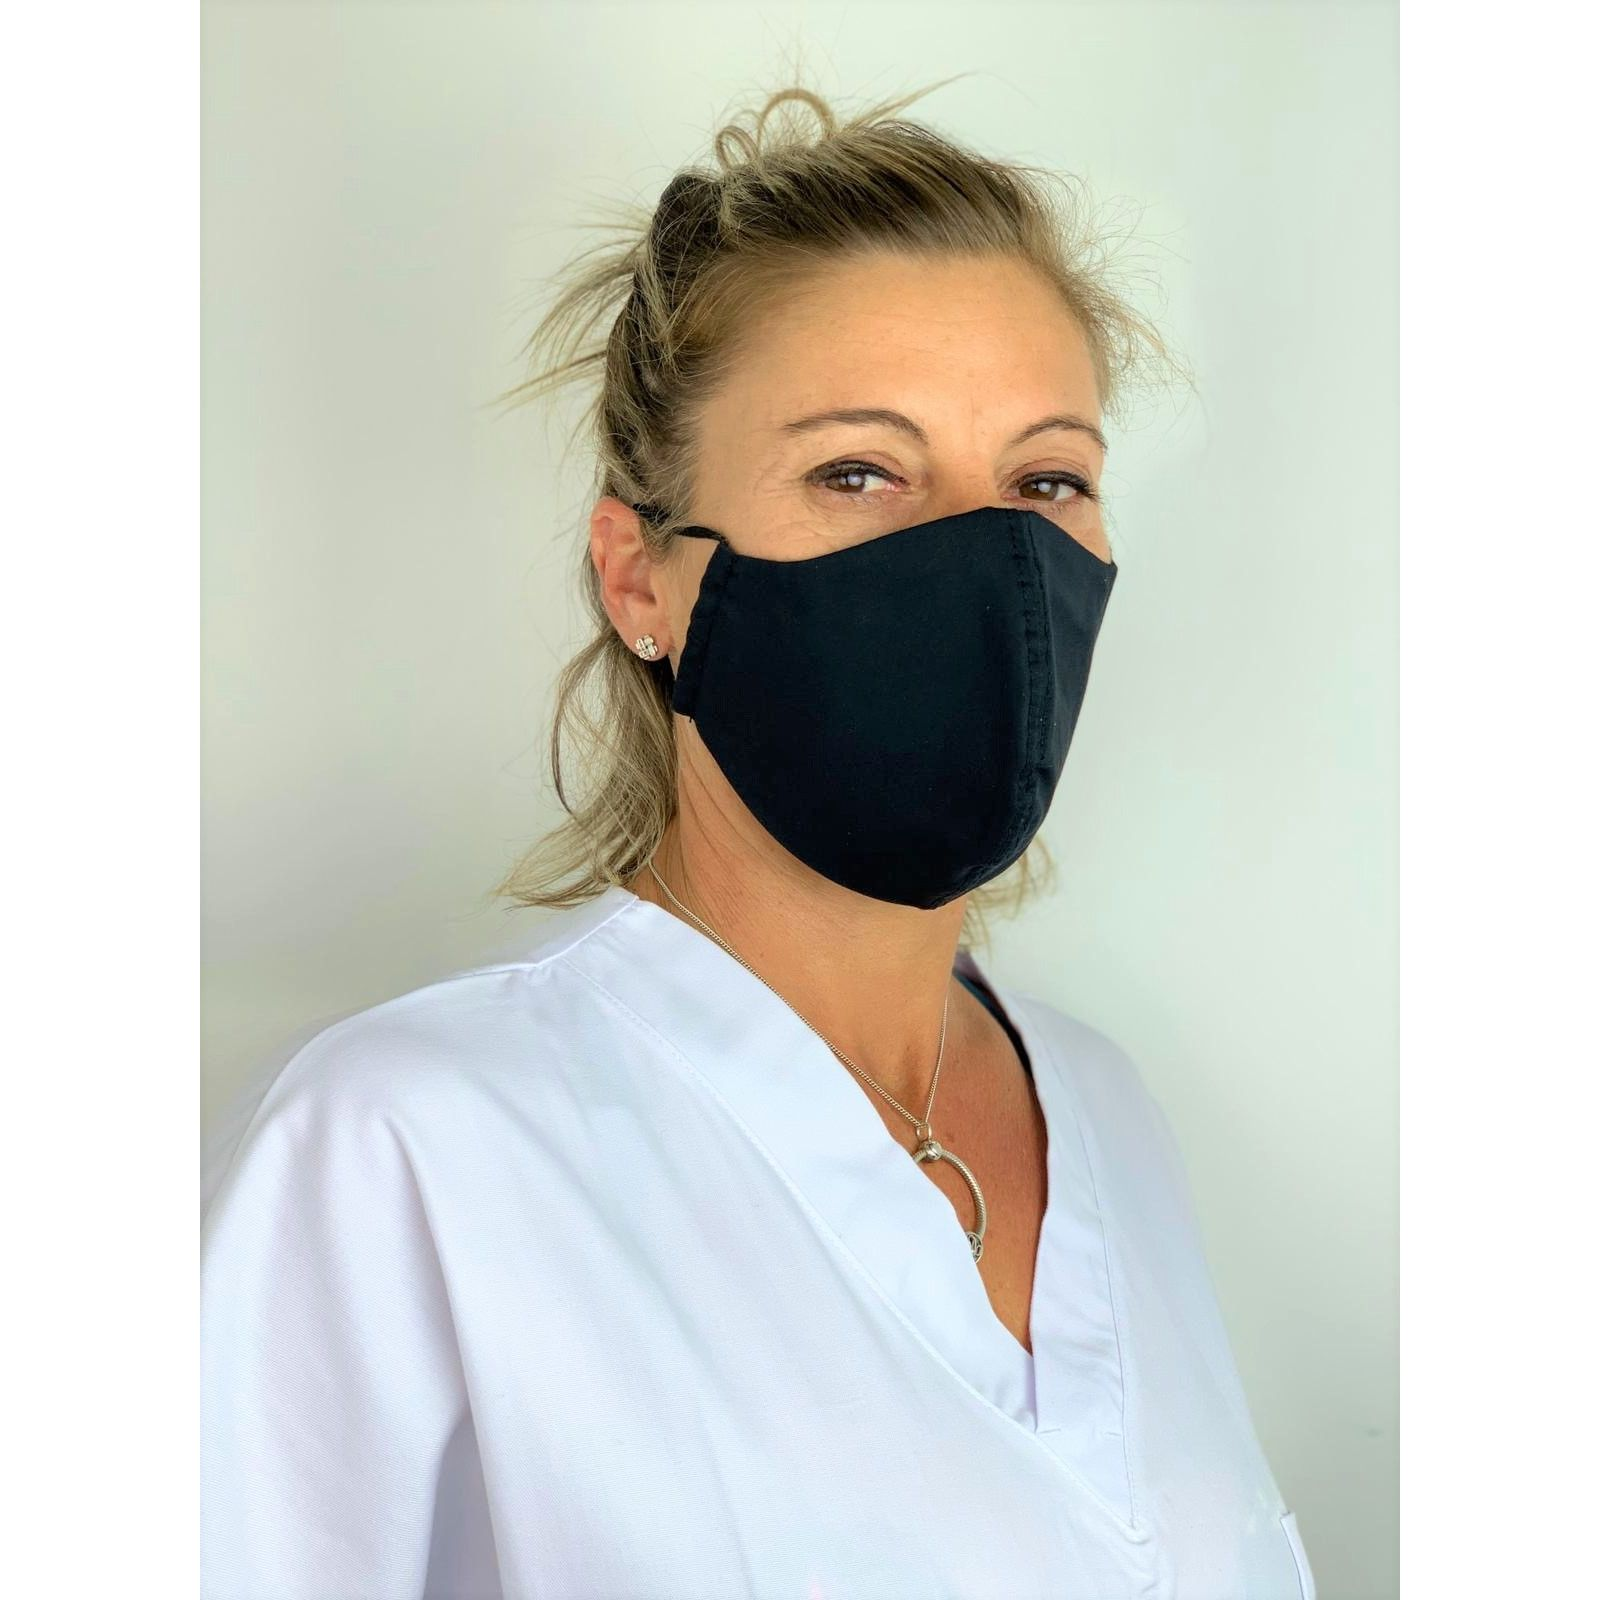 Lot 3 - Masque adulte de protection Antimicrobien (CR500X) modele noir